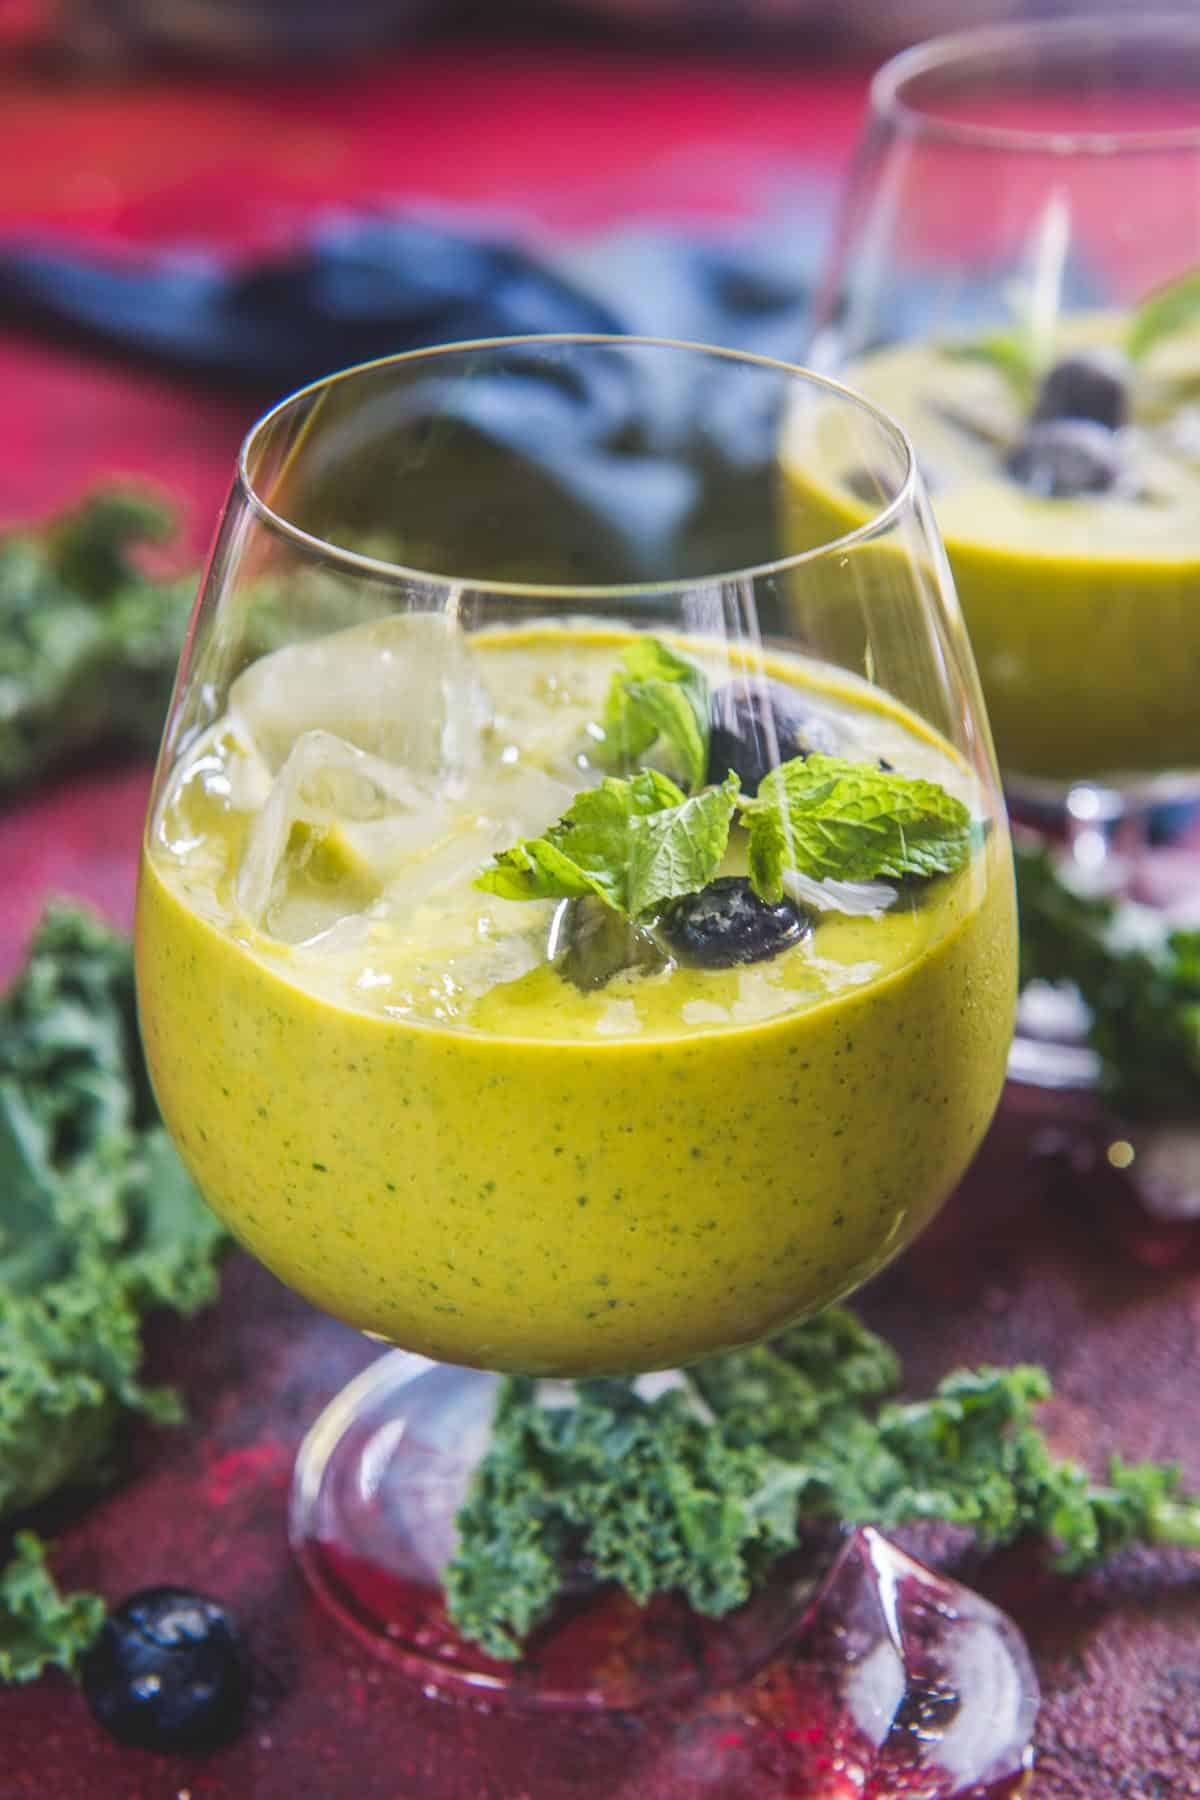 Mango kale smoothie served in a bowl.